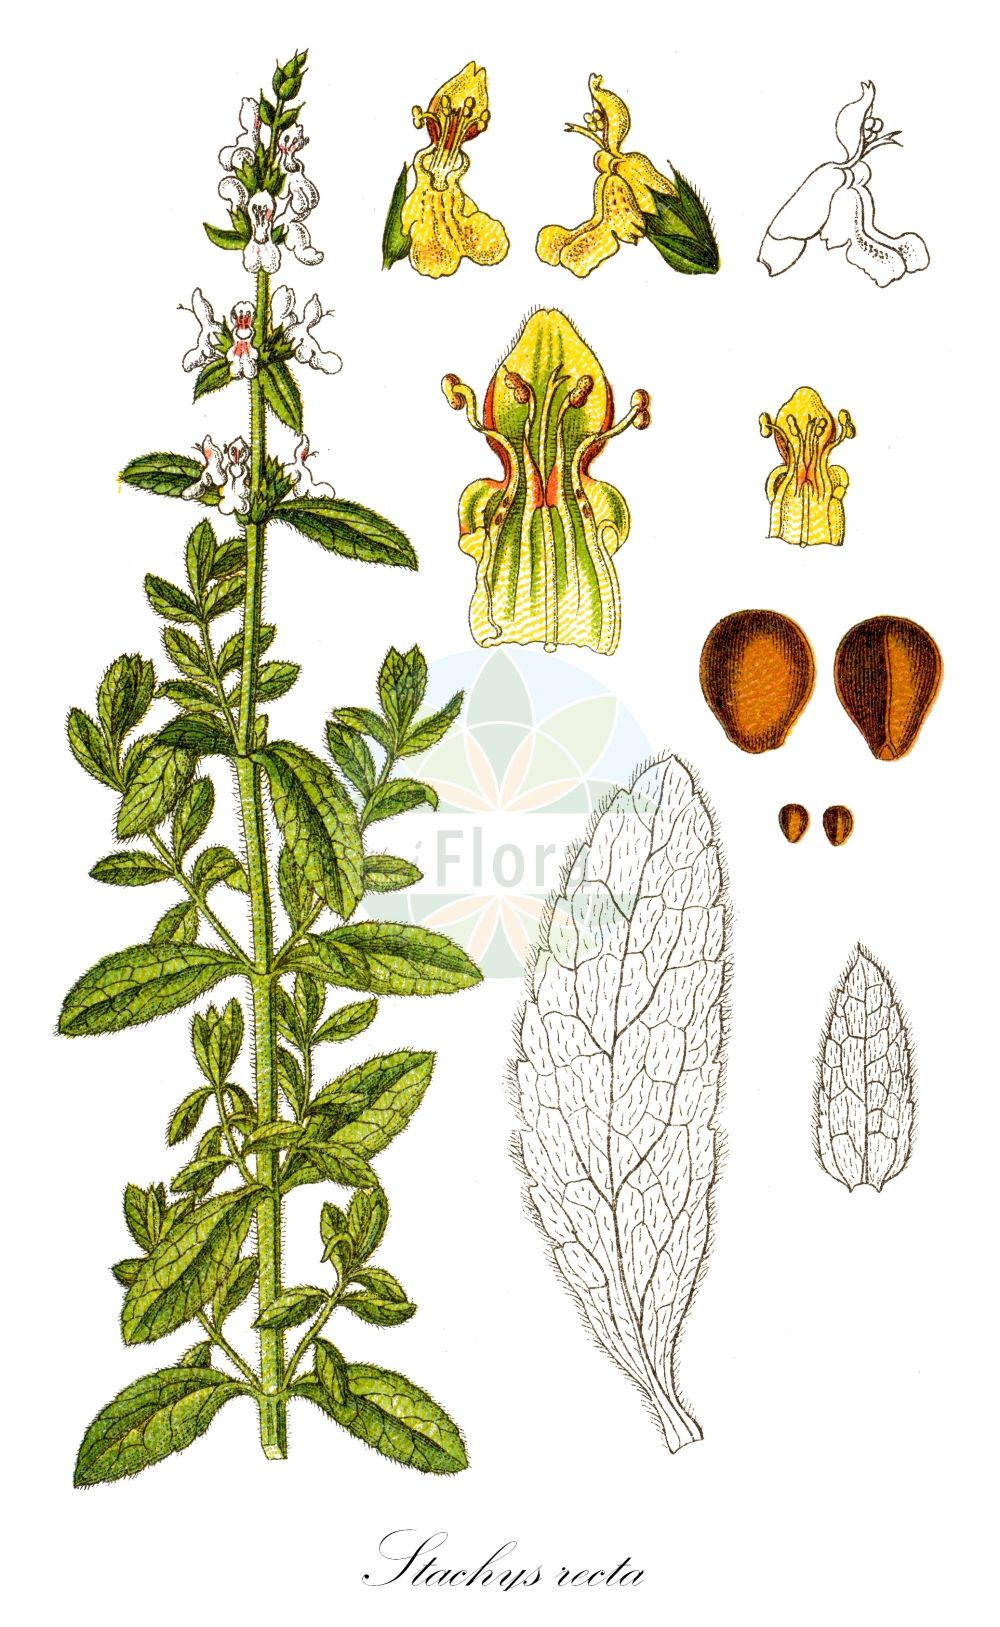 Historische Abbildung von Stachys recta (Aufrechter Ziest - Perennial Yellow-woundwort). Das Bild zeigt Blatt, Bluete, Frucht und Same. ---- Historical Drawing of Stachys recta (Aufrechter Ziest - Perennial Yellow-woundwort).The image is showing leaf, flower, fruit and seed.(Stachys recta,Aufrechter Ziest,Perennial Yellow-woundwort,Betonica recta,Ortostachys recta,Prasium stachys,,Grossbluetiger Ziest,Stiff Hedgenettle,Upright Hedge Nettle,Stachys,Ziest,Hedgenettle,Lamiaceae,Lippenbluetengewaechse;Lippenbluetler,Nettle family,Blatt,Bluete,Frucht,Same,leaf,flower,fruit,seed,Sturm (1796f))